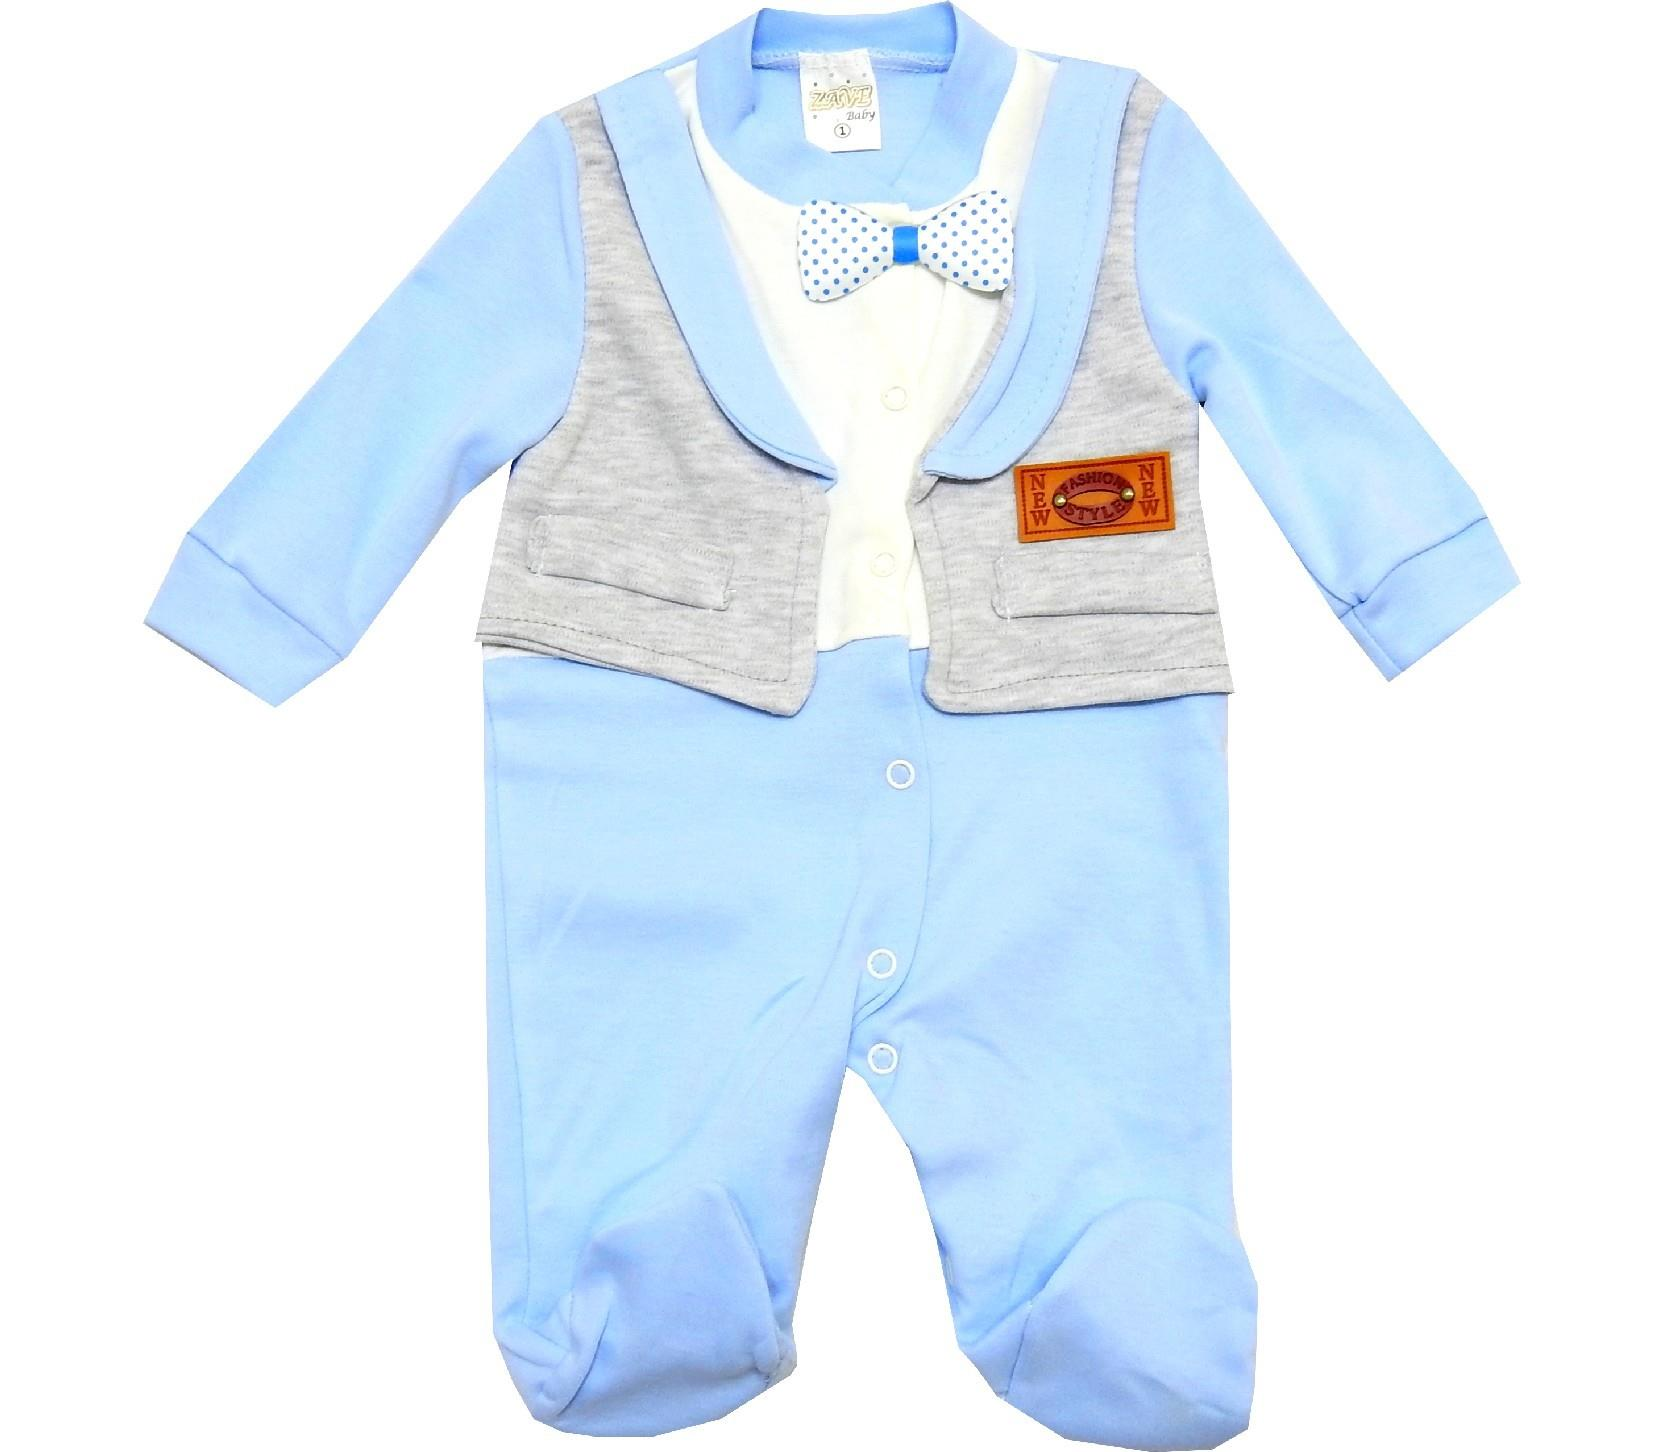 WHOLESALE DECORATIVE WAIST DESIGN BODYSUIT FOR BOY (3-6-9 MONTH)